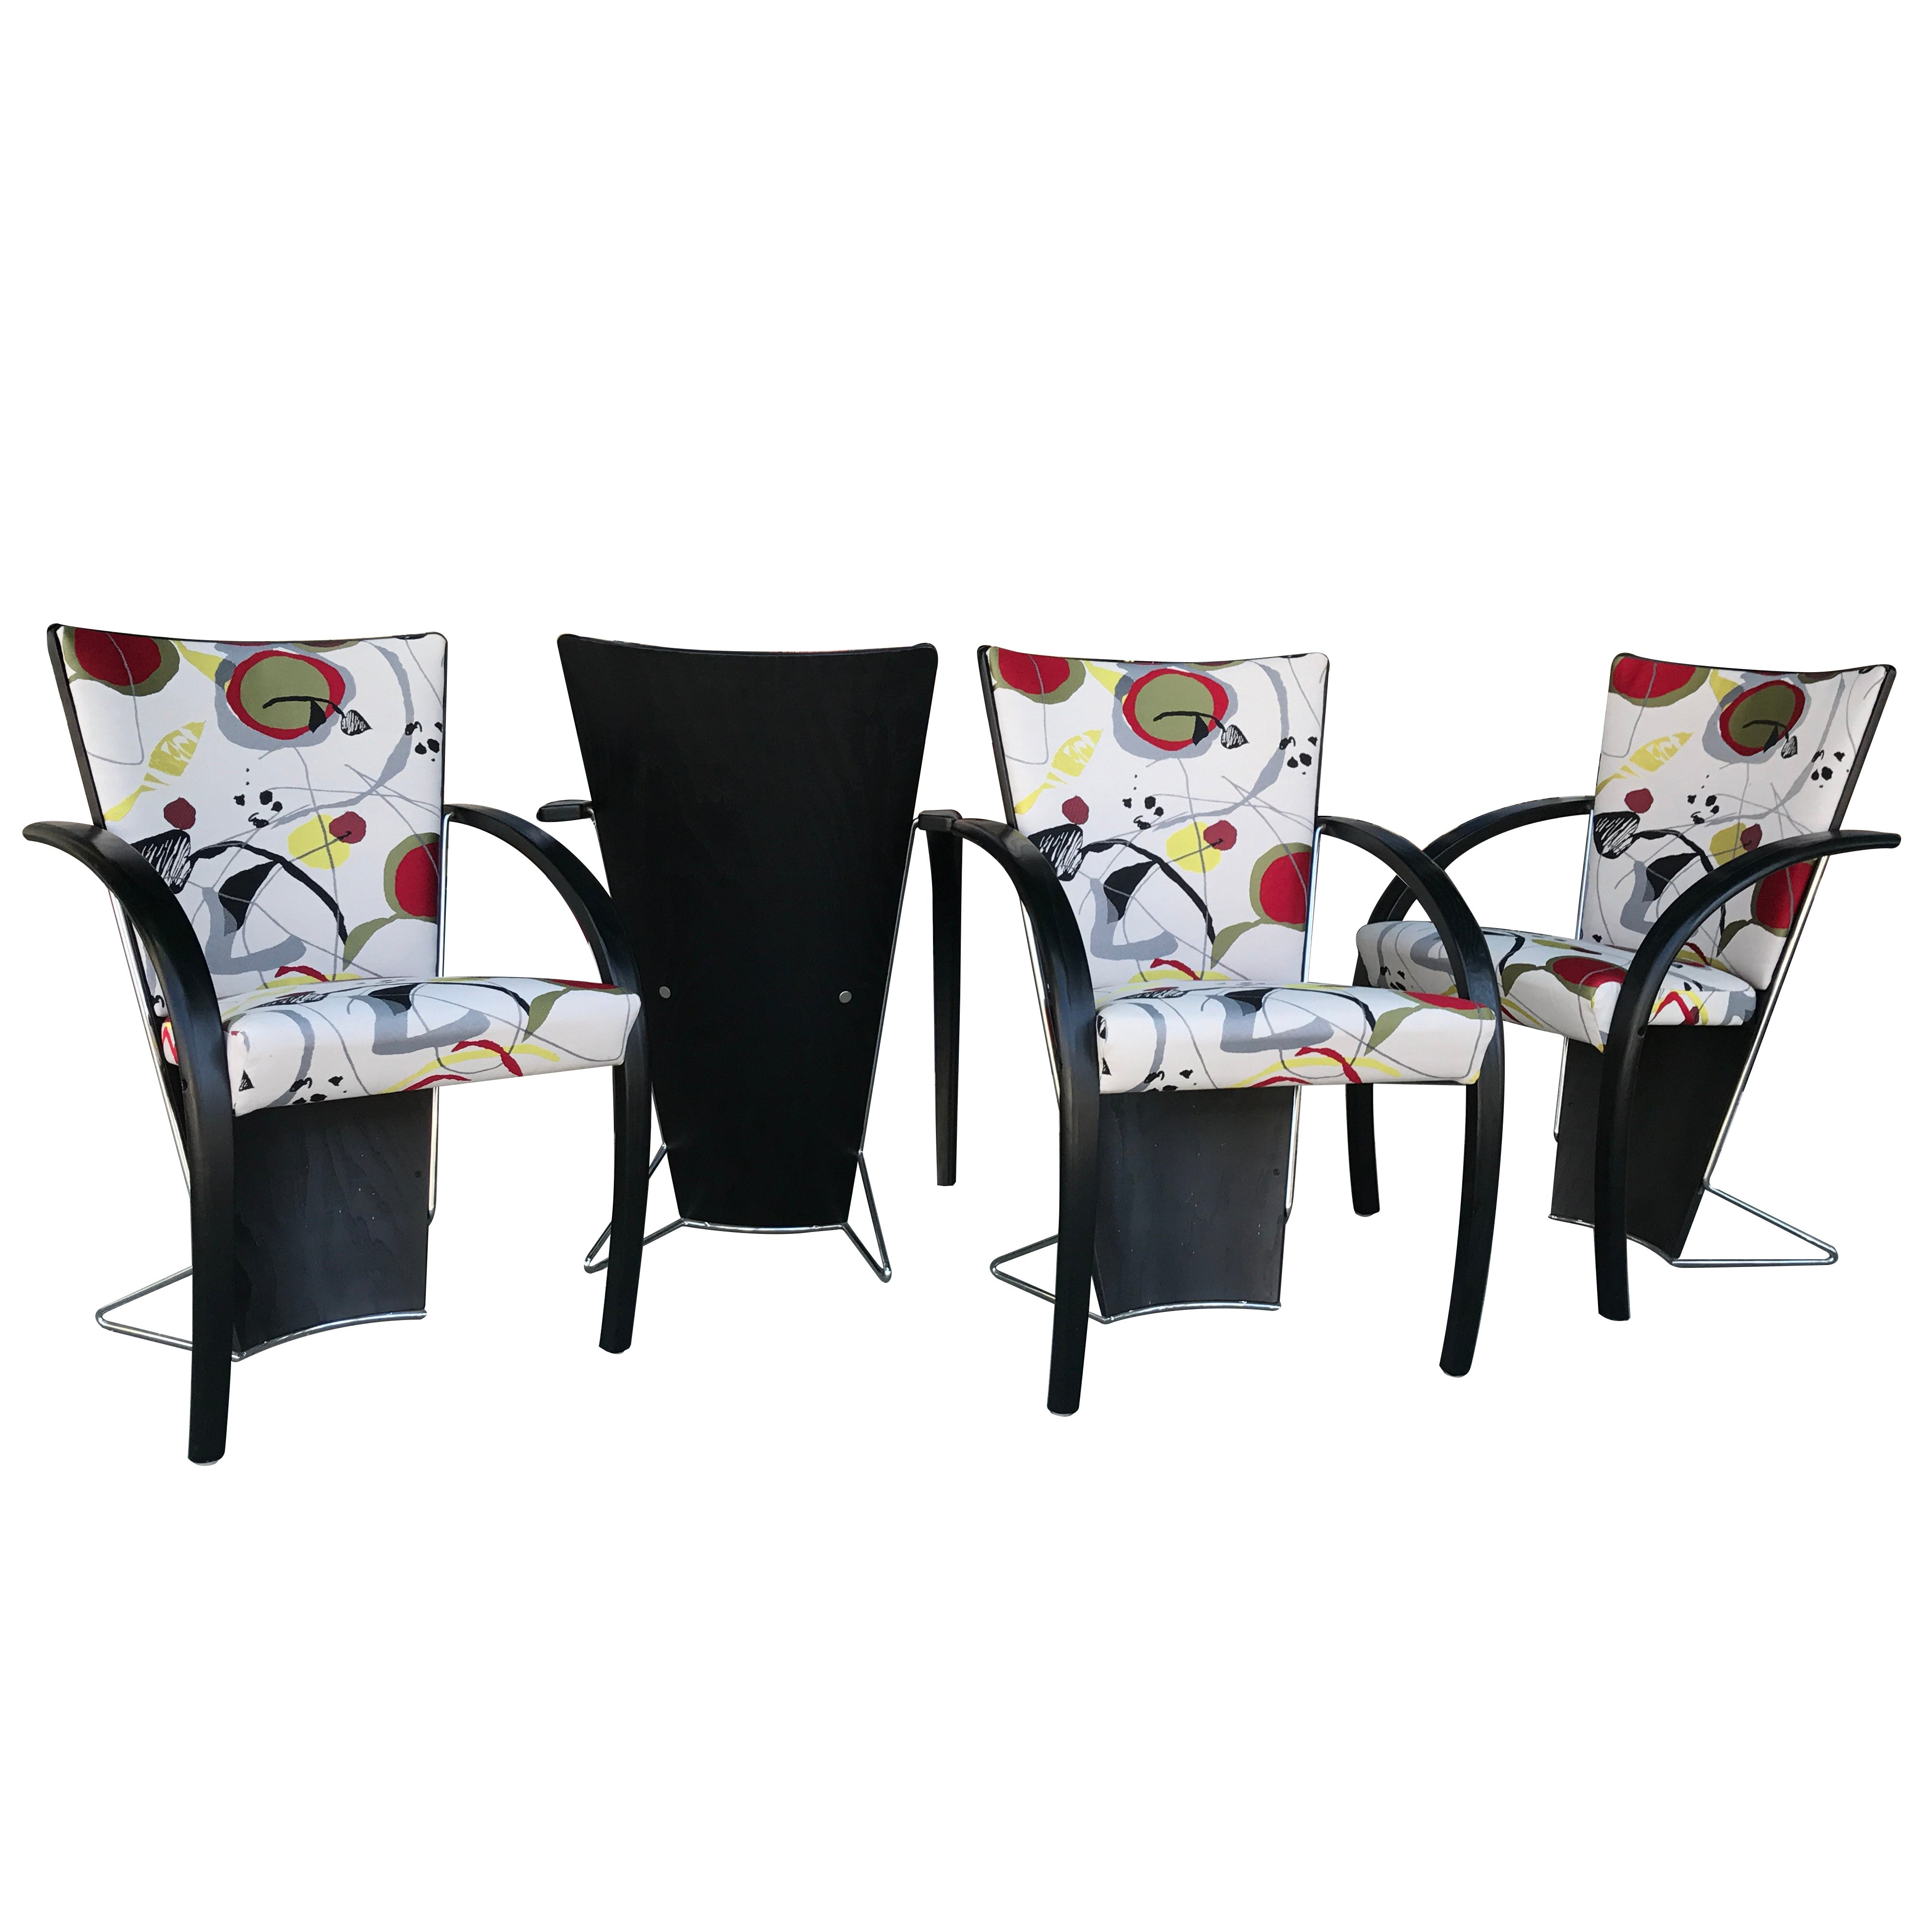 Set of Four Designer Norwegian 80s Modern Dining or Game Chairs Made by Westnofa